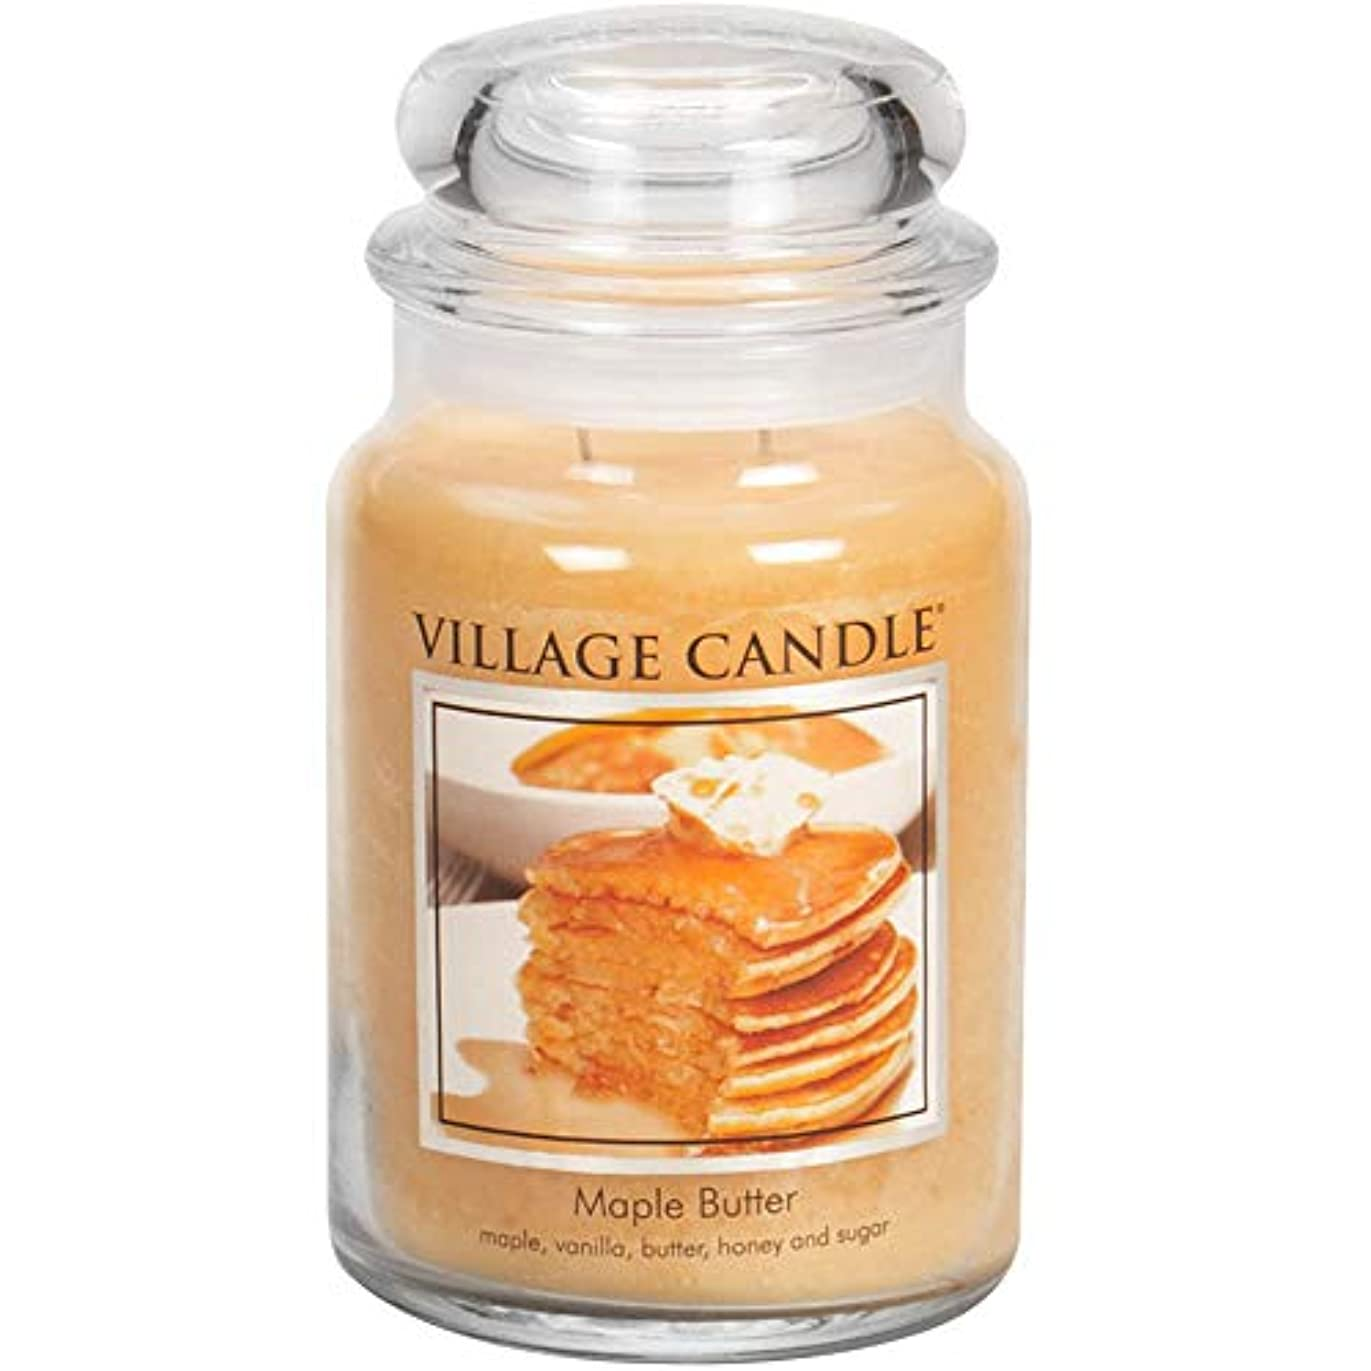 ピラミッドコーンウォールシェードVillage Candle Large Fragranced Candle Jar - 17cm x 10cm - 26oz (1219g)- Maple Butter - upto 170 hours burn time...